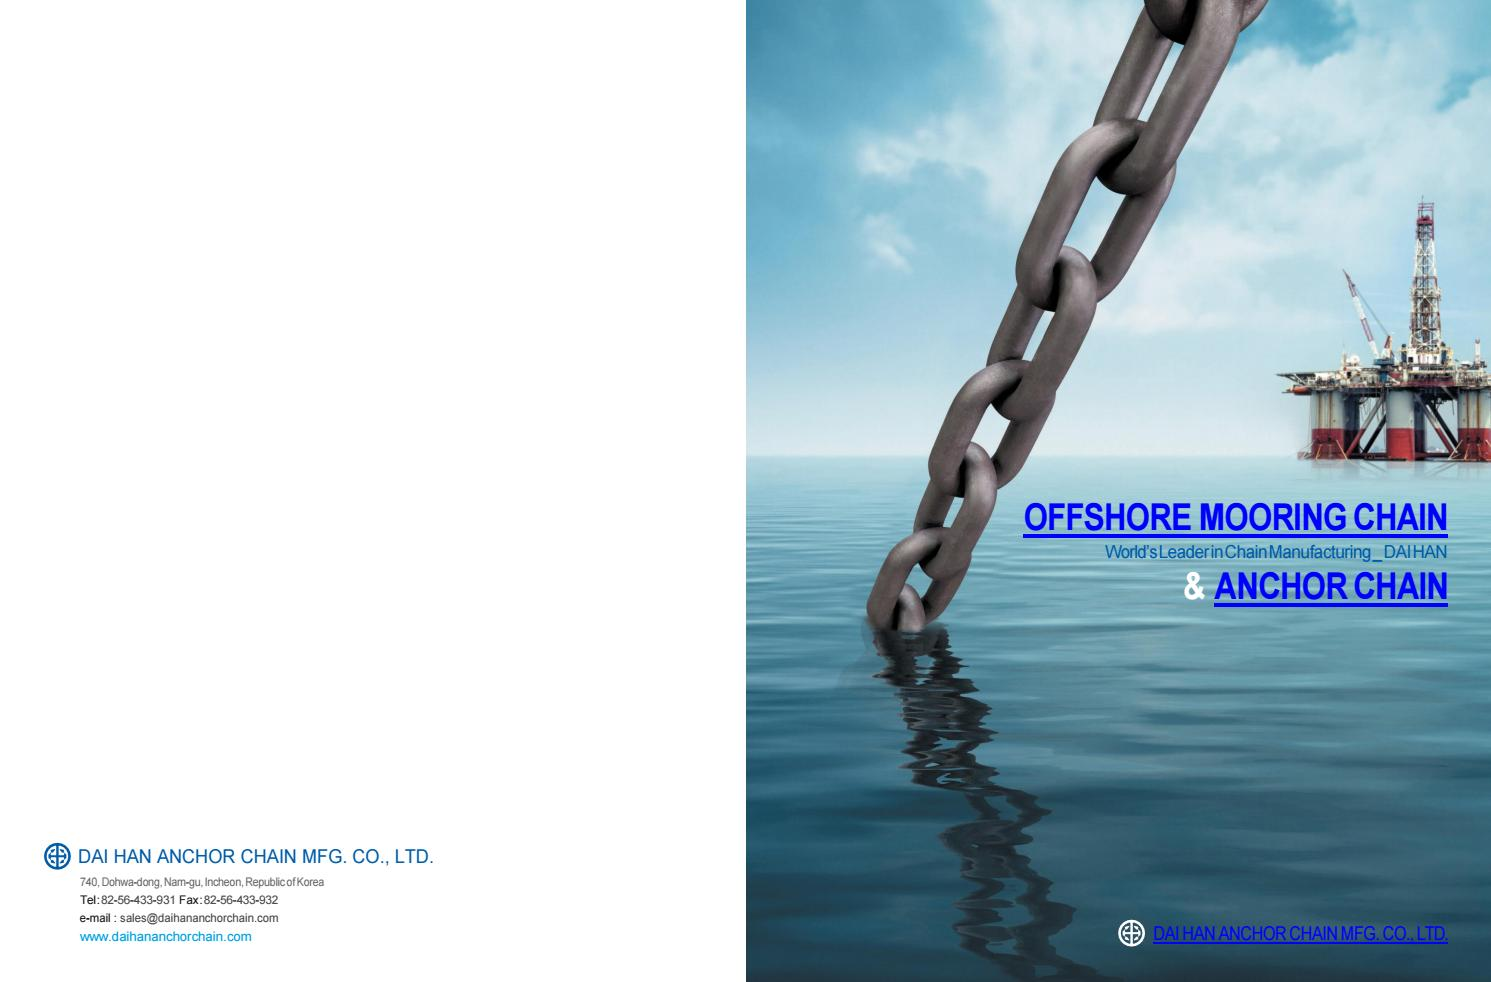 Offshore mooring chain & anchor chain by conclubiltz - issuu